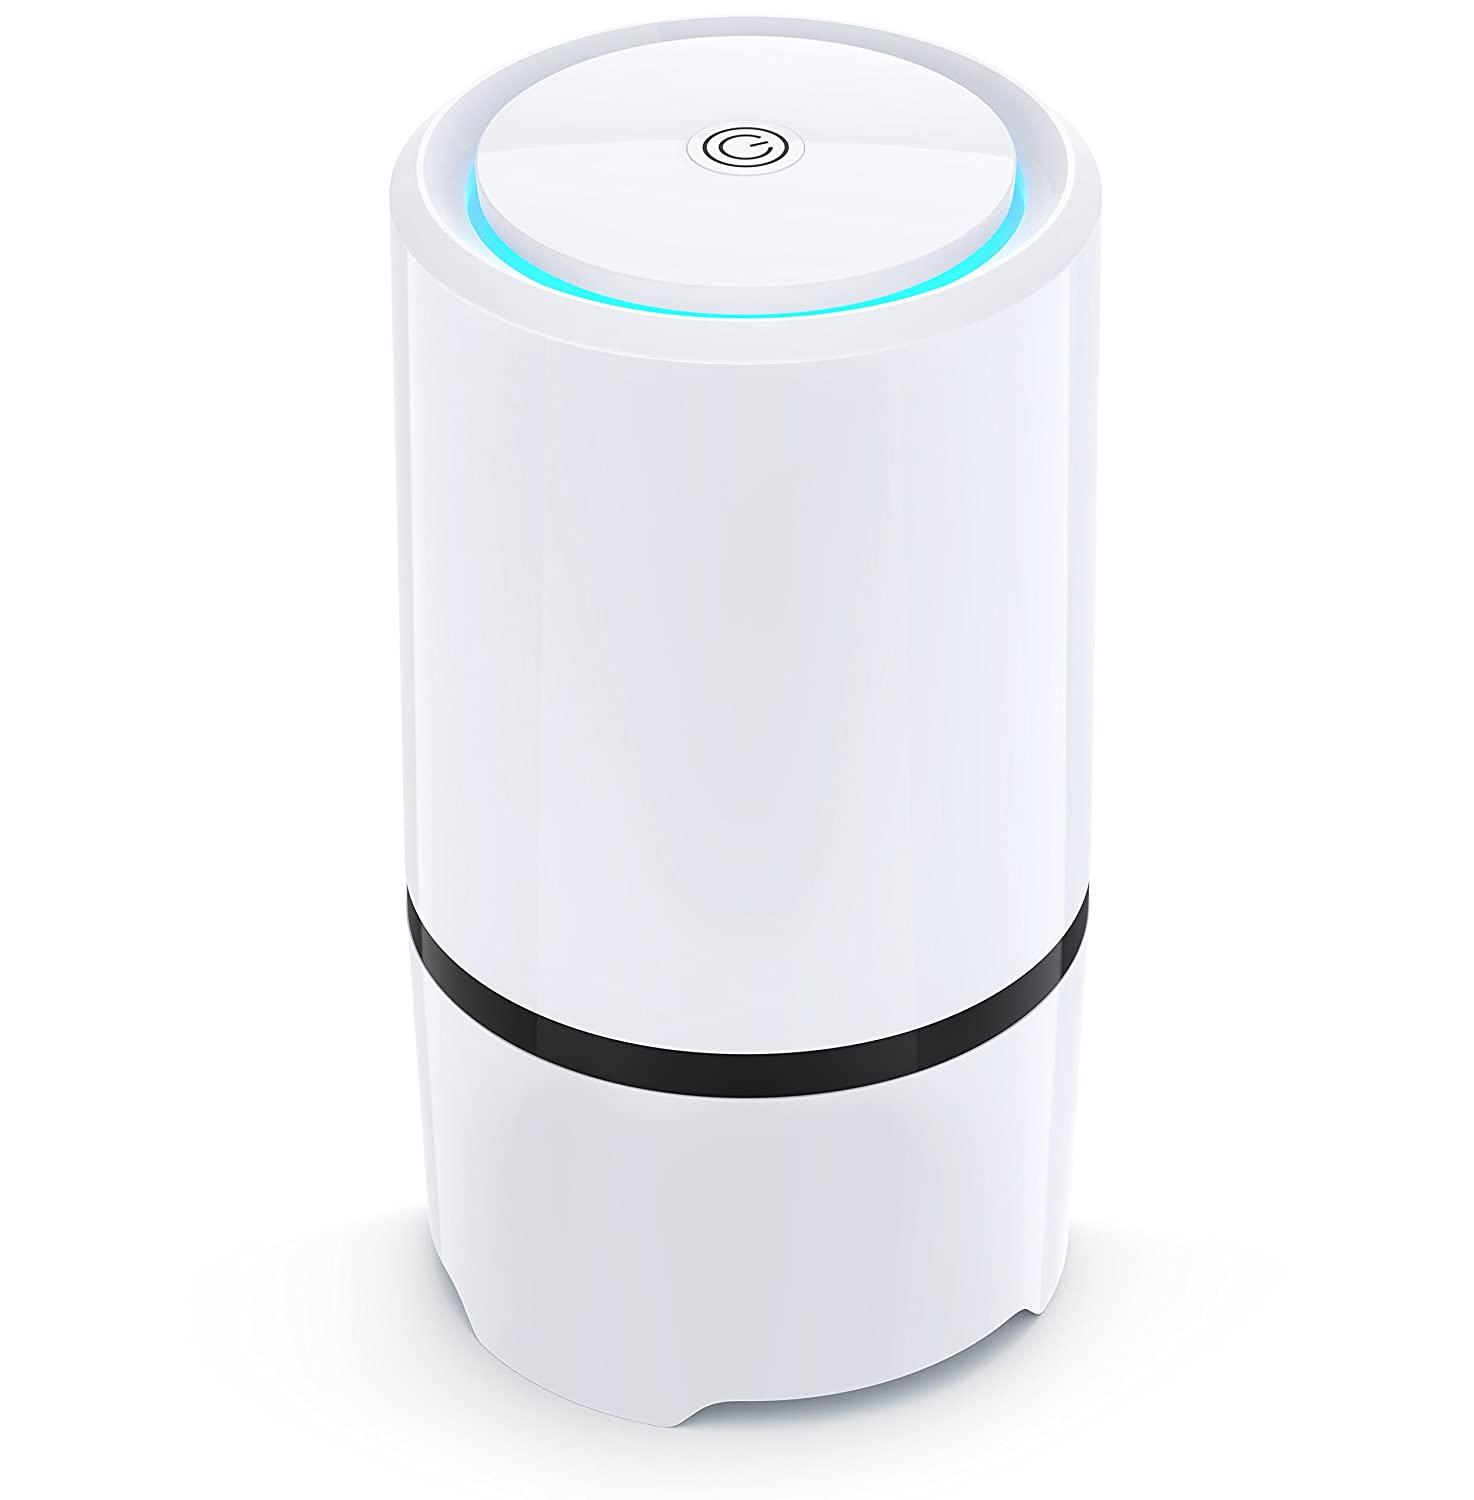 NET-DYN Air Purifier - USB Air Filter, HEPA Filtration and Small Personal Desktop Home Air Cleaner for Eliminating Harmful Allergens, Bacteria, Allergies and Pets Pure Pacific Air